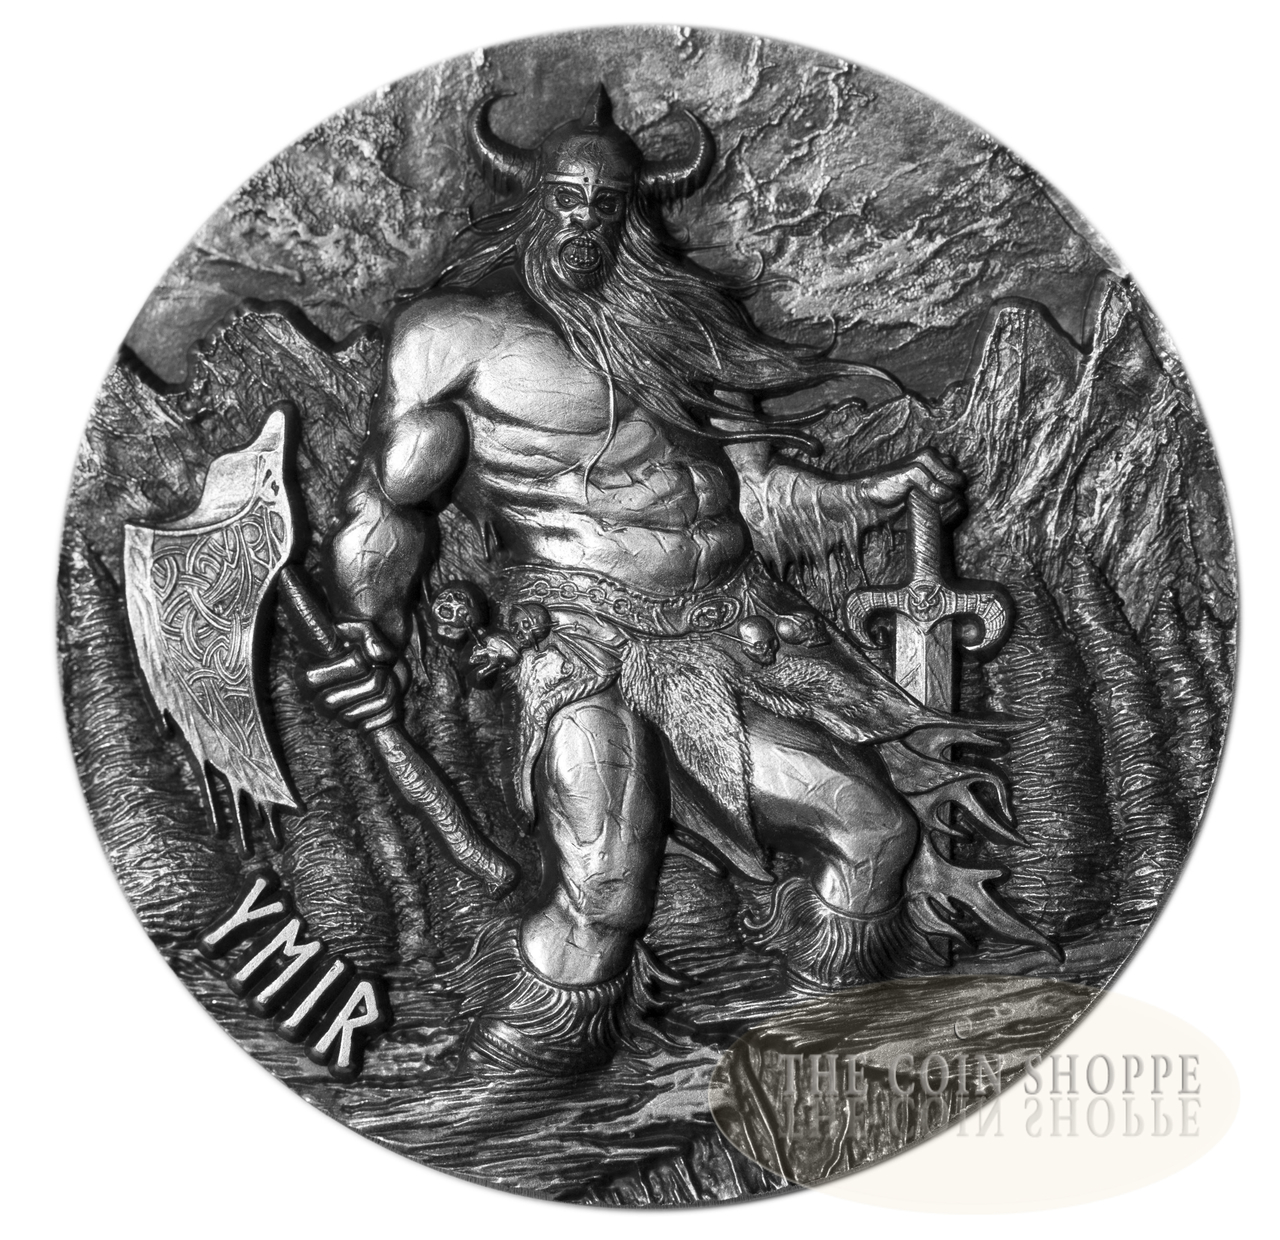 **FREE SHIPPING TO CANADA & USA ** YMIR - THE FATHER OF GIANTS - LEGENDS OF ASGARD SERIES - 2017 3 oz Fine Silver Max Relief Coin